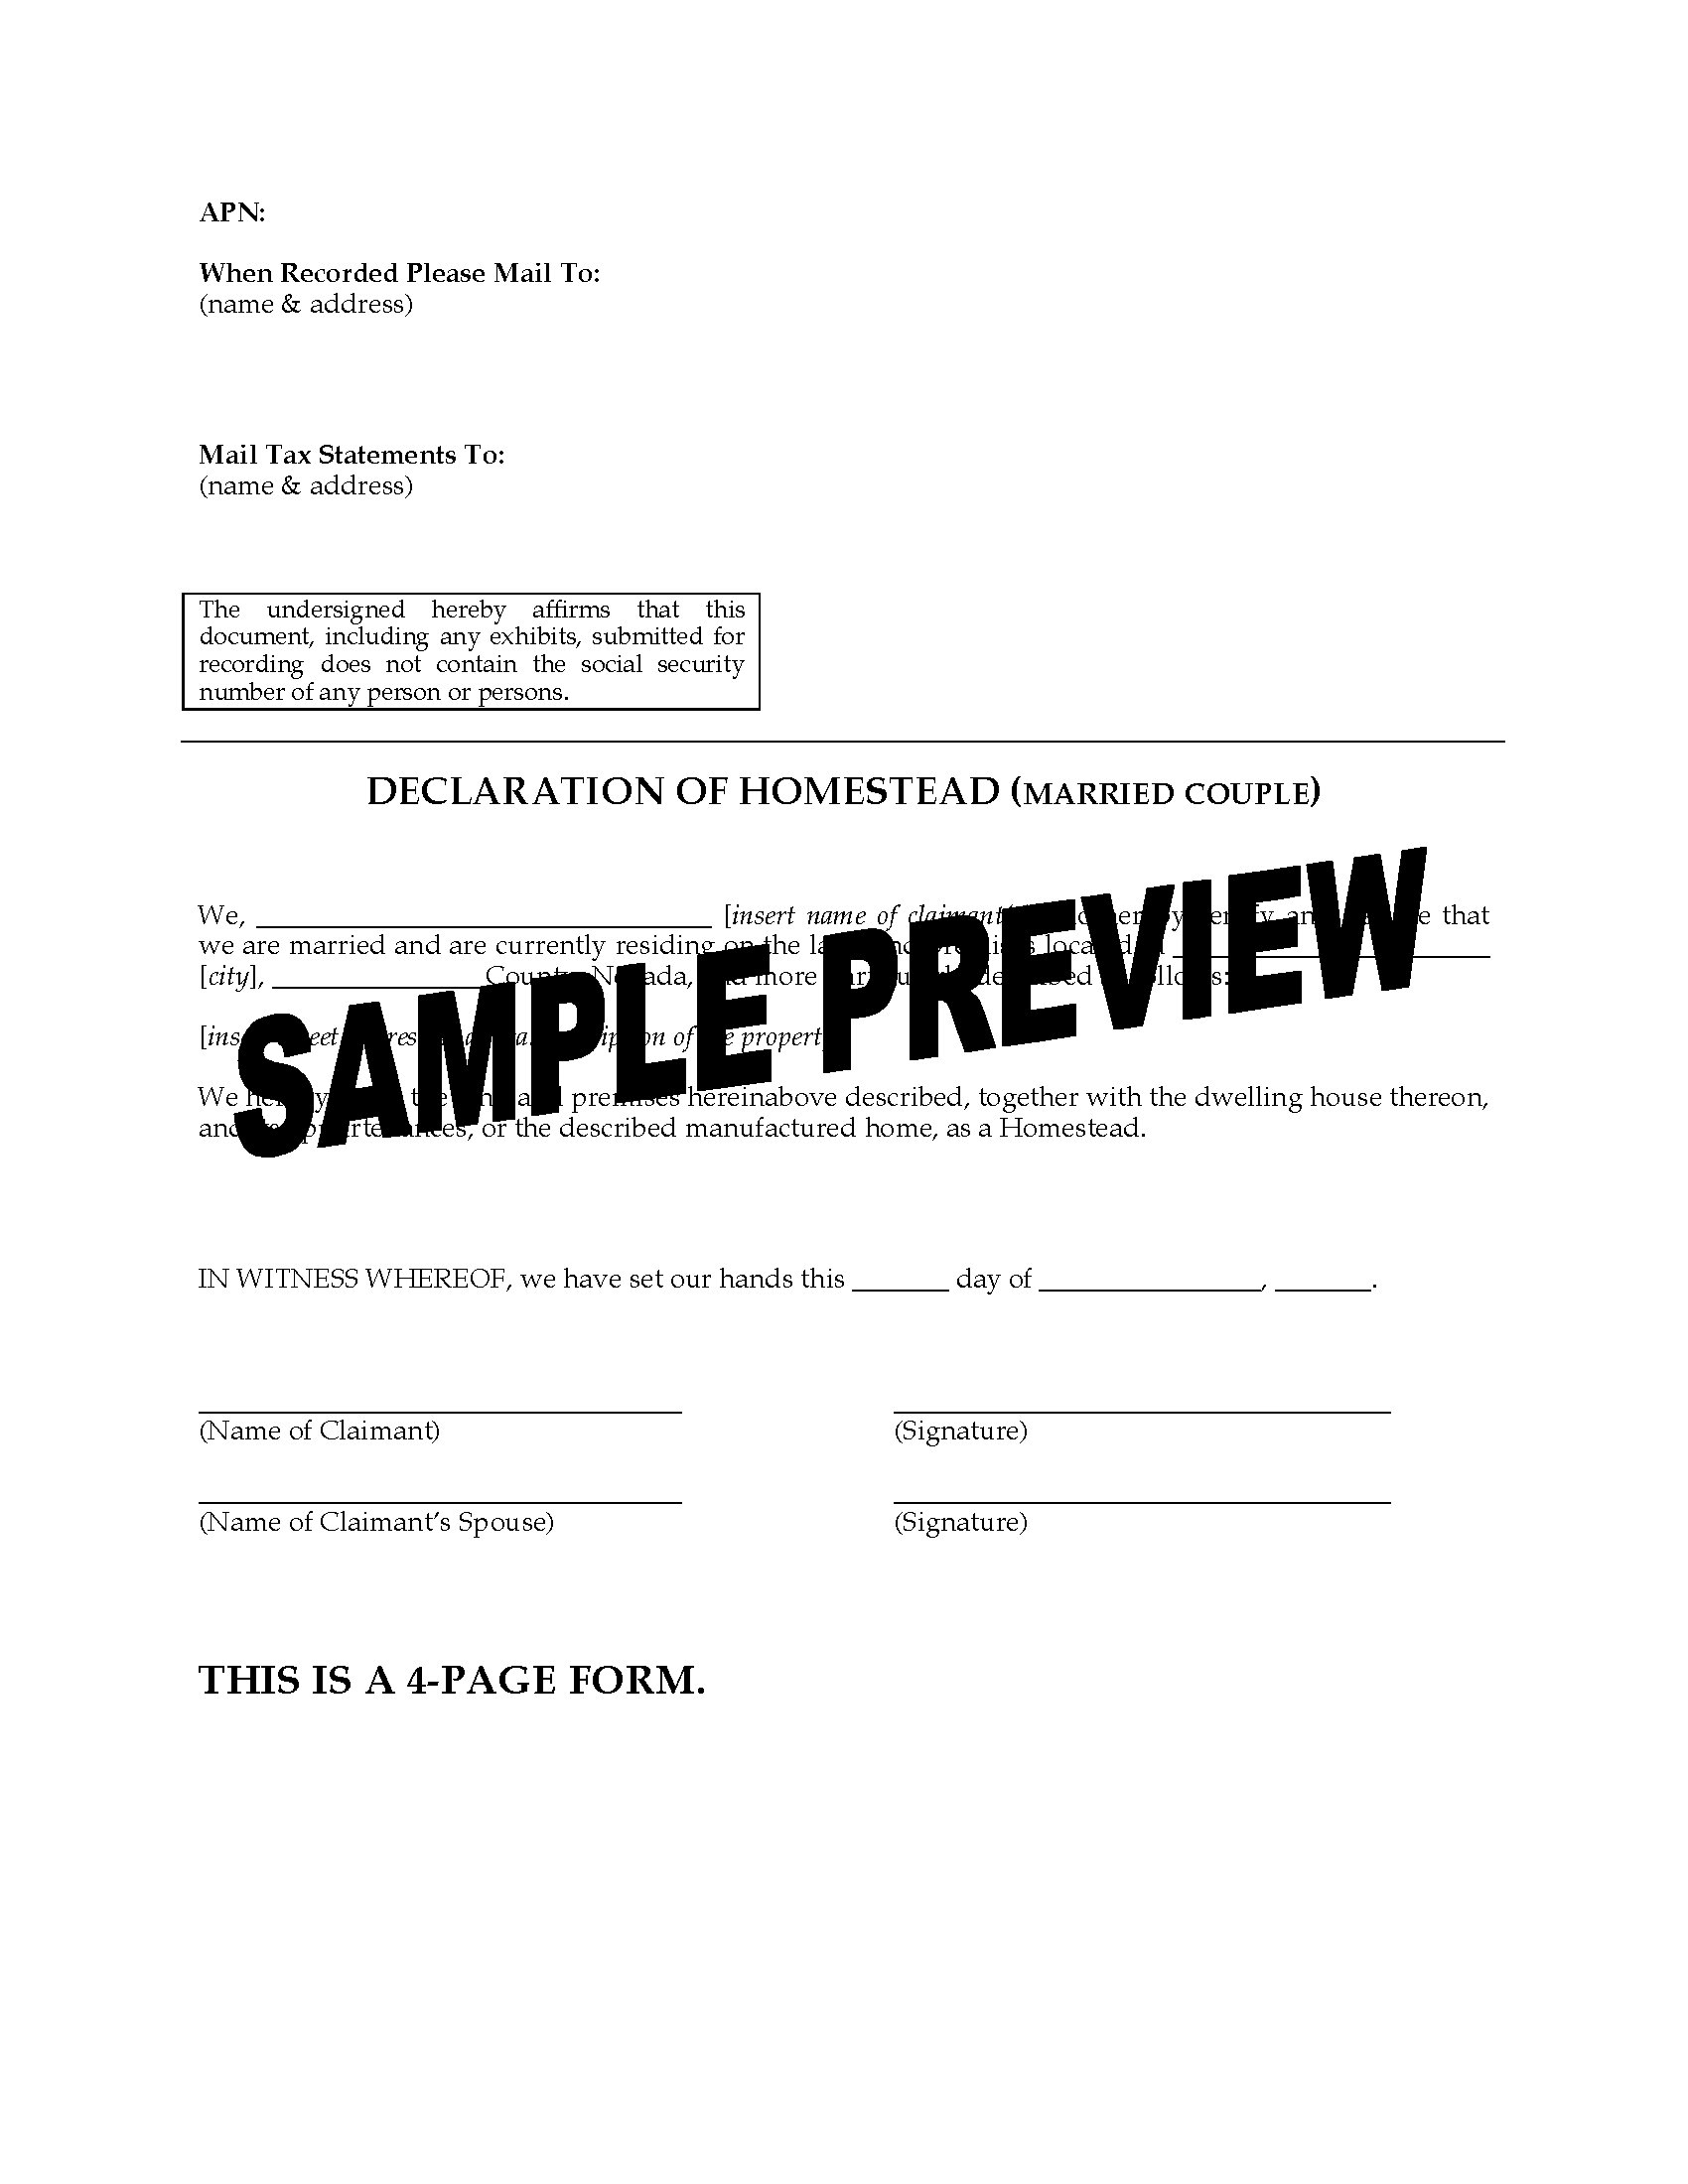 Nevada Declaration of Homestead for Married Couple | Legal Forms ...